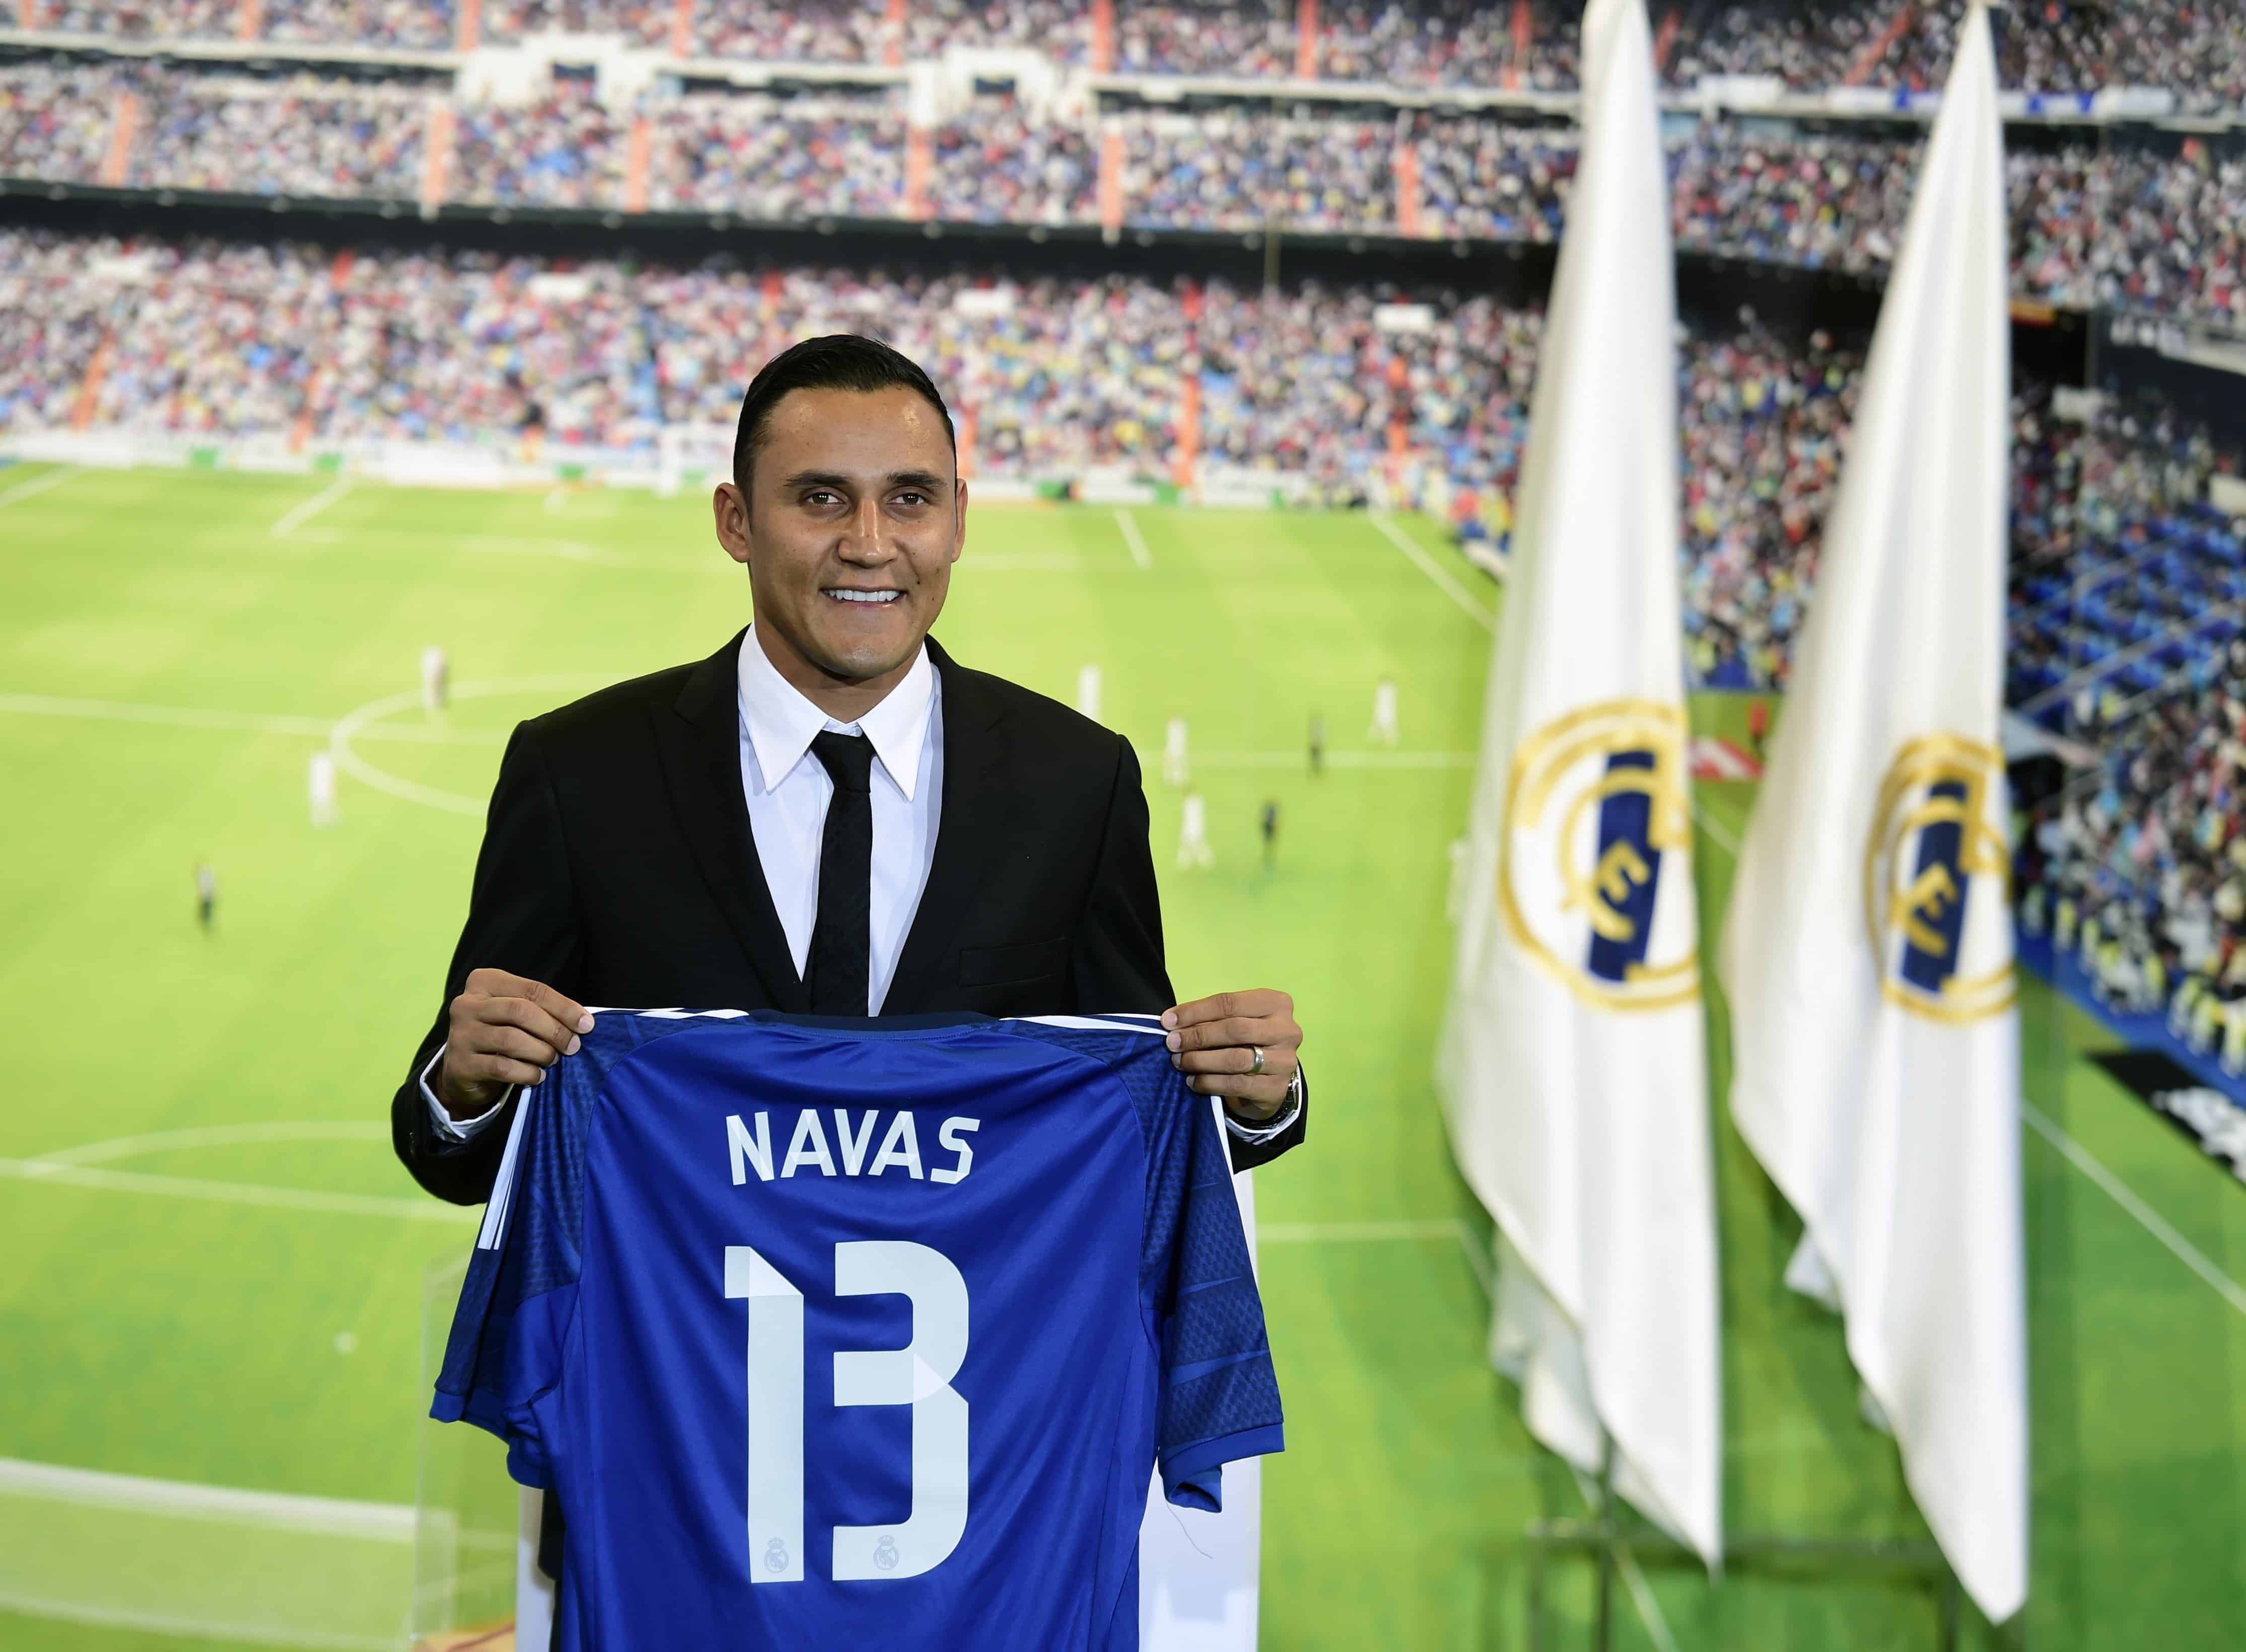 separation shoes 2bb73 83d0b Costa Rica's Keylor Navas up for challenge after Madrid move ...